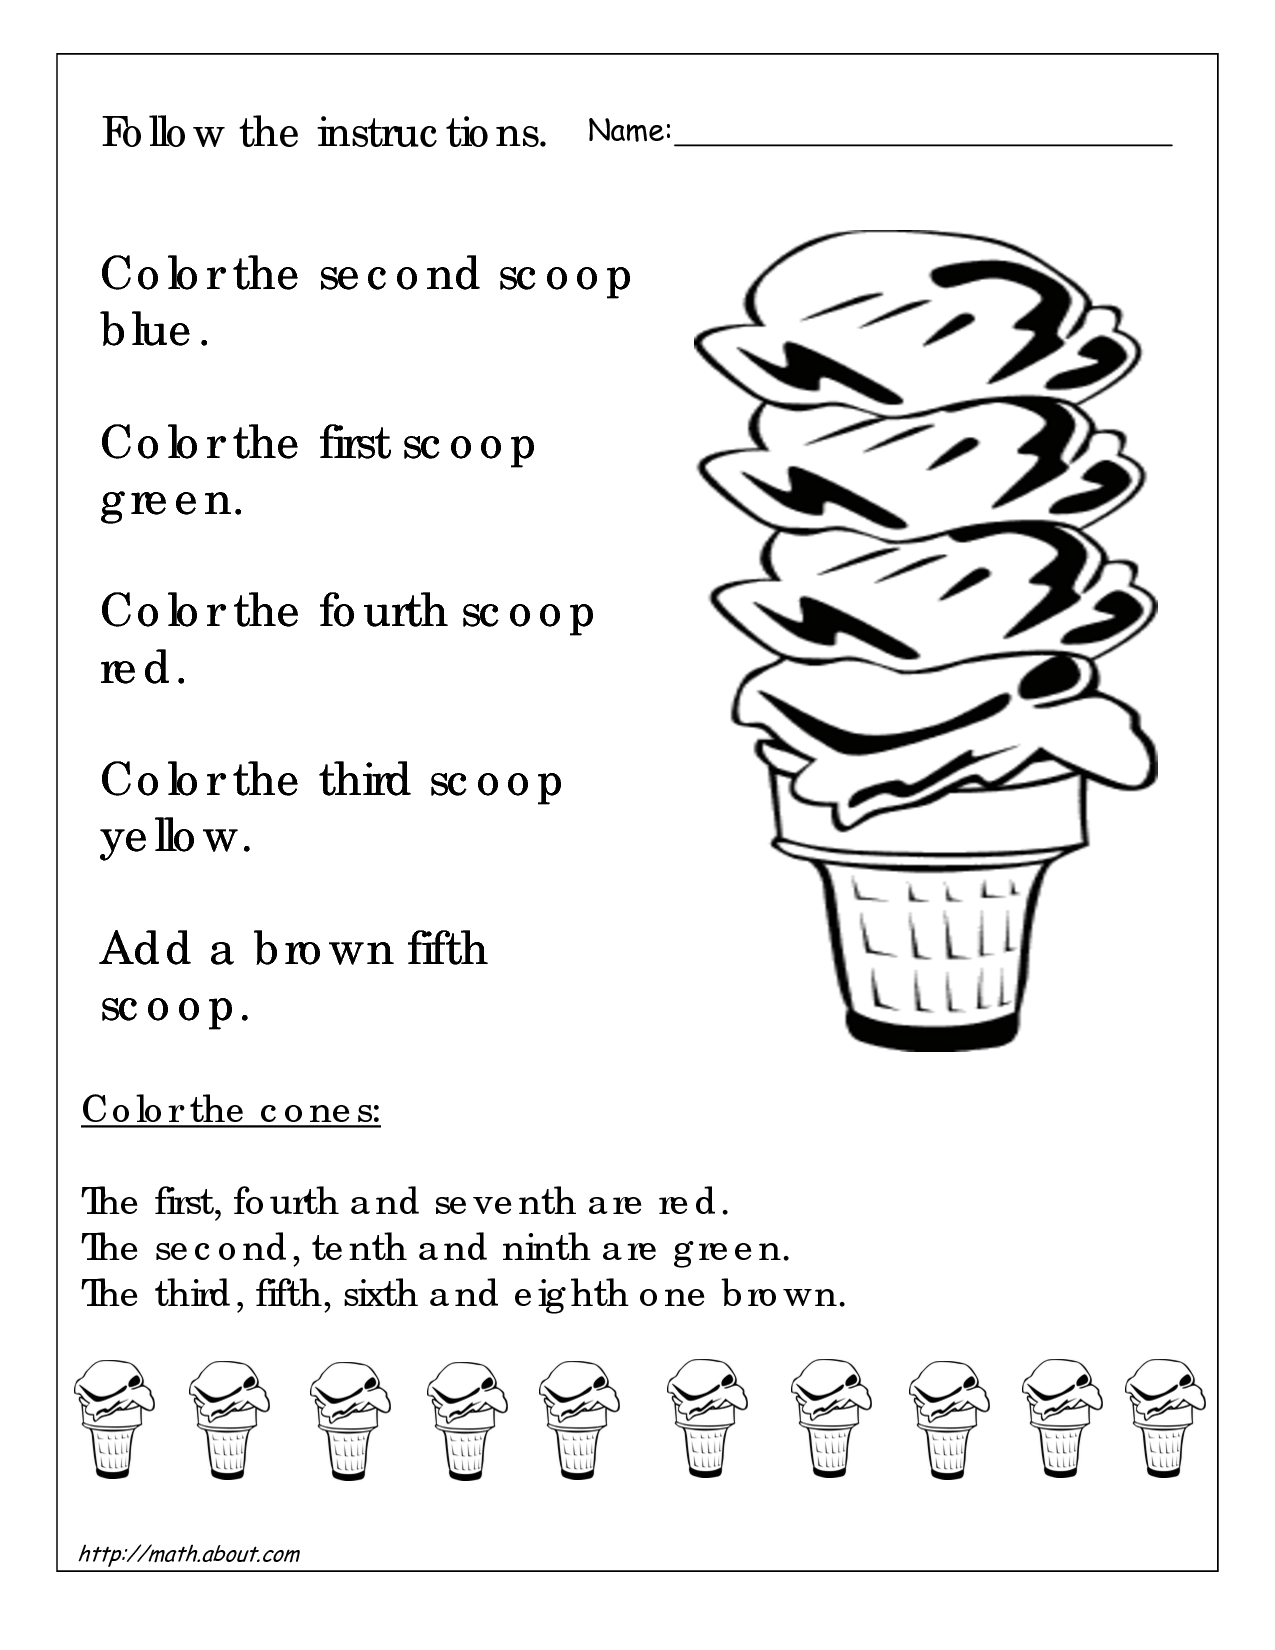 Worksheet 4th Grade Spelling Worksheets Worksheet Fun